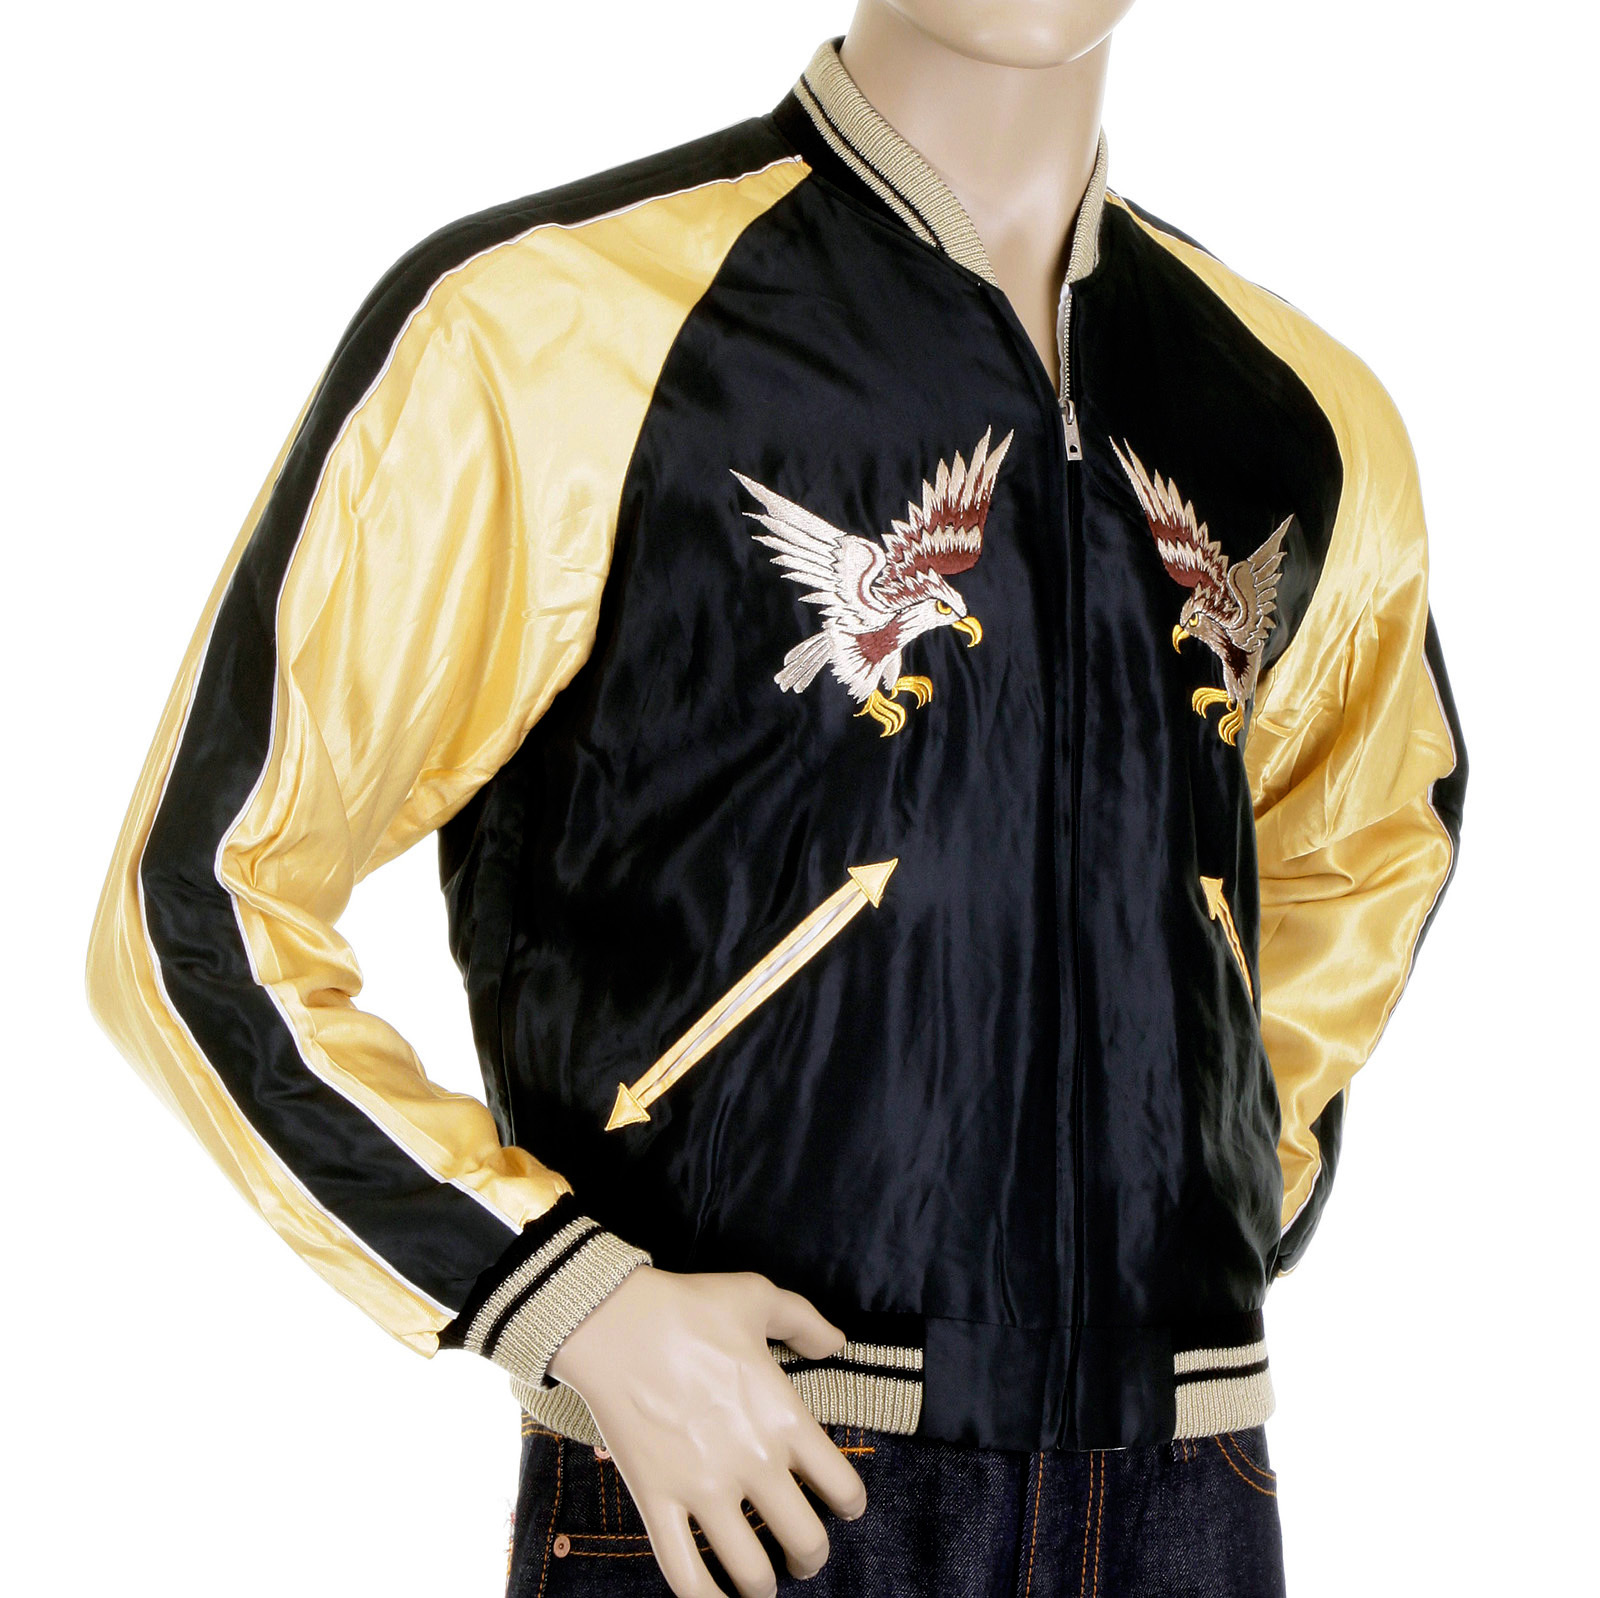 Shop For Tailor Toyo Mens Suka Jacket Now At Togged